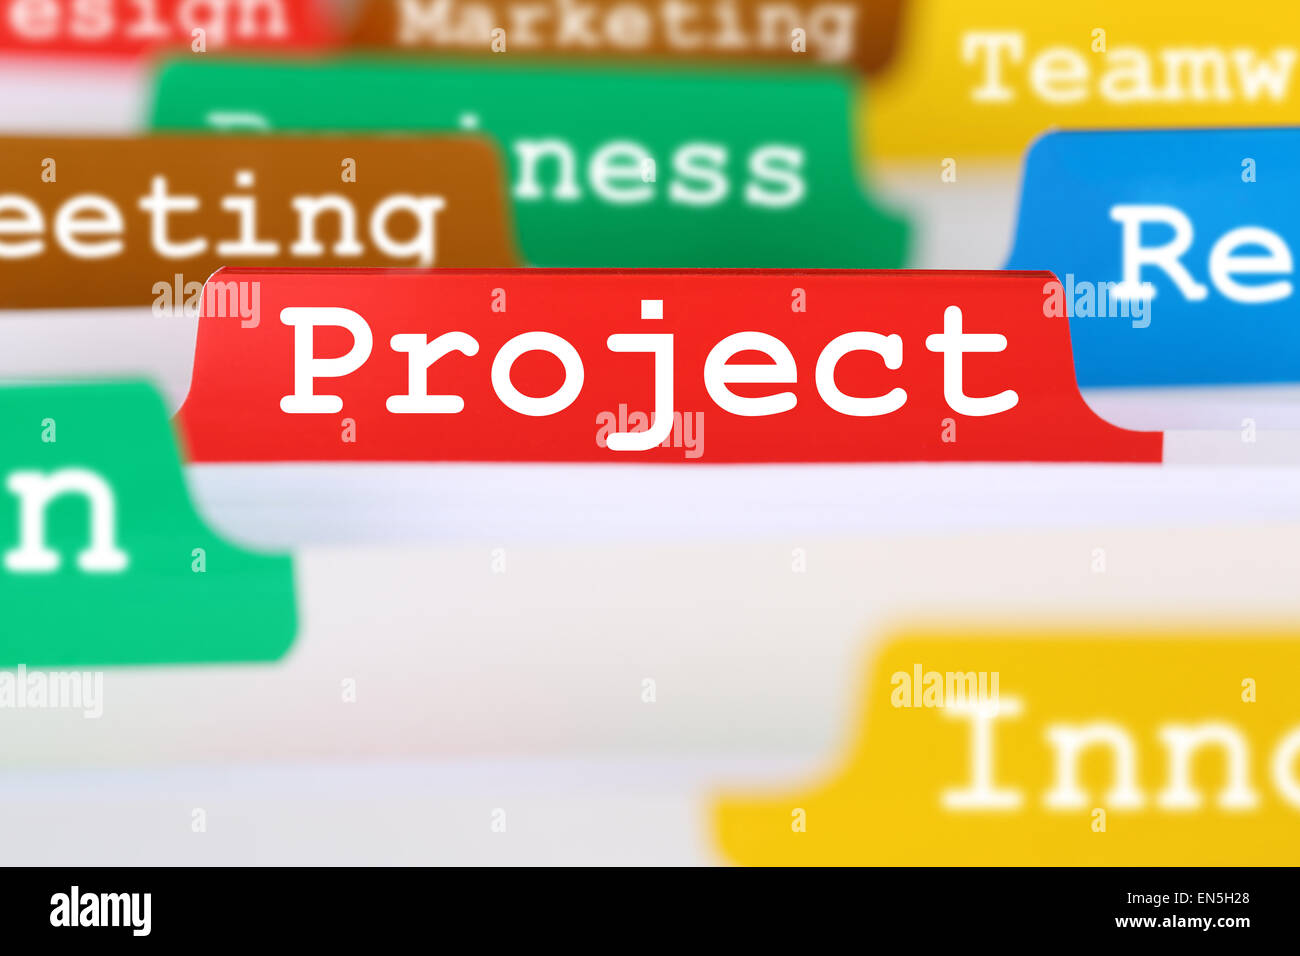 Project concept organization working office text on register in business documents - Stock Image